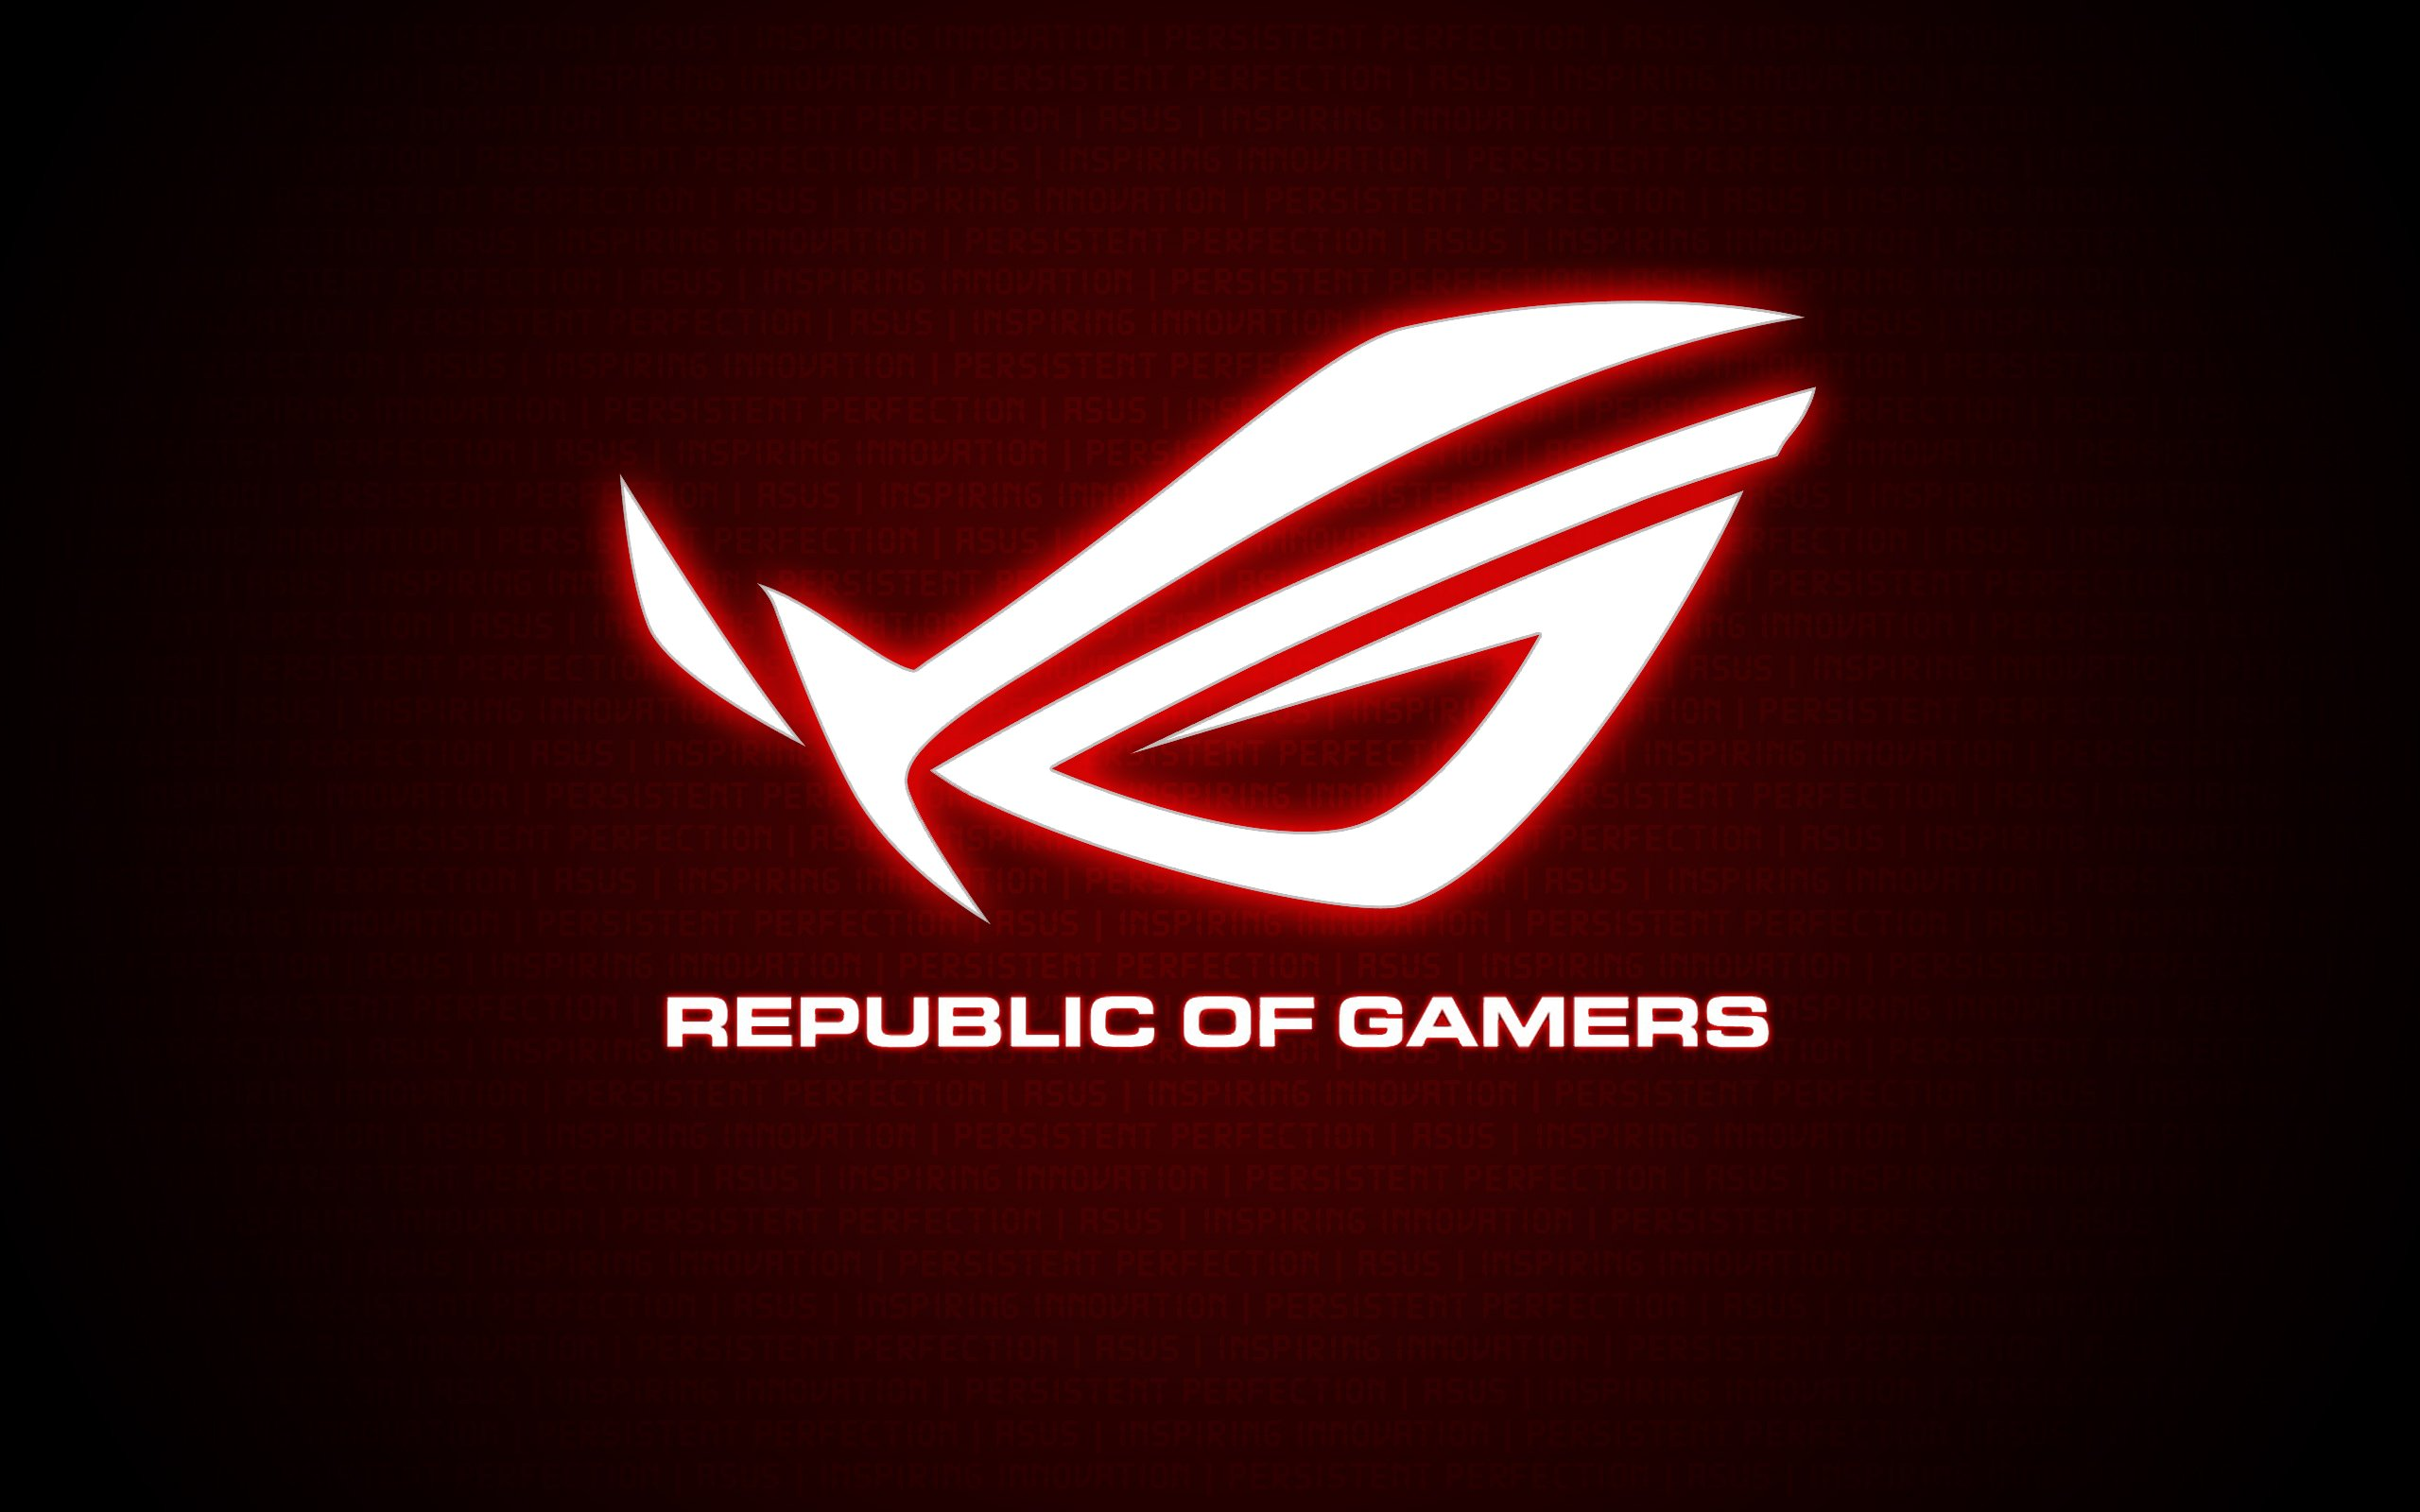 Asus Showcases Latest Rog Gaming Lineup At Ifa 2017